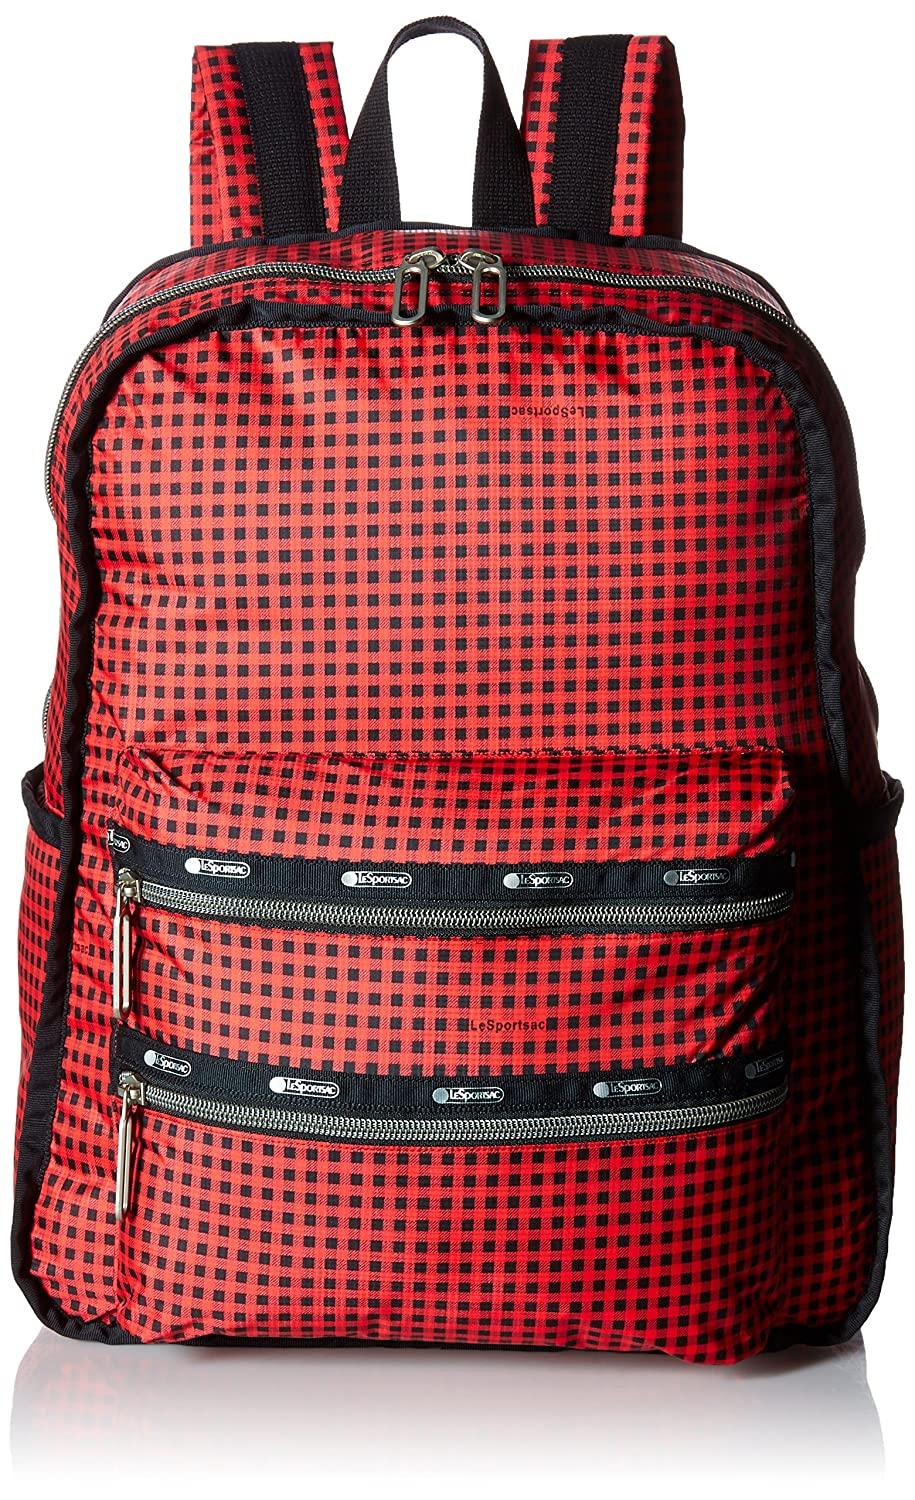 LeSportsac Essential Functional Backpack Blossom Stripe C One Size 2296